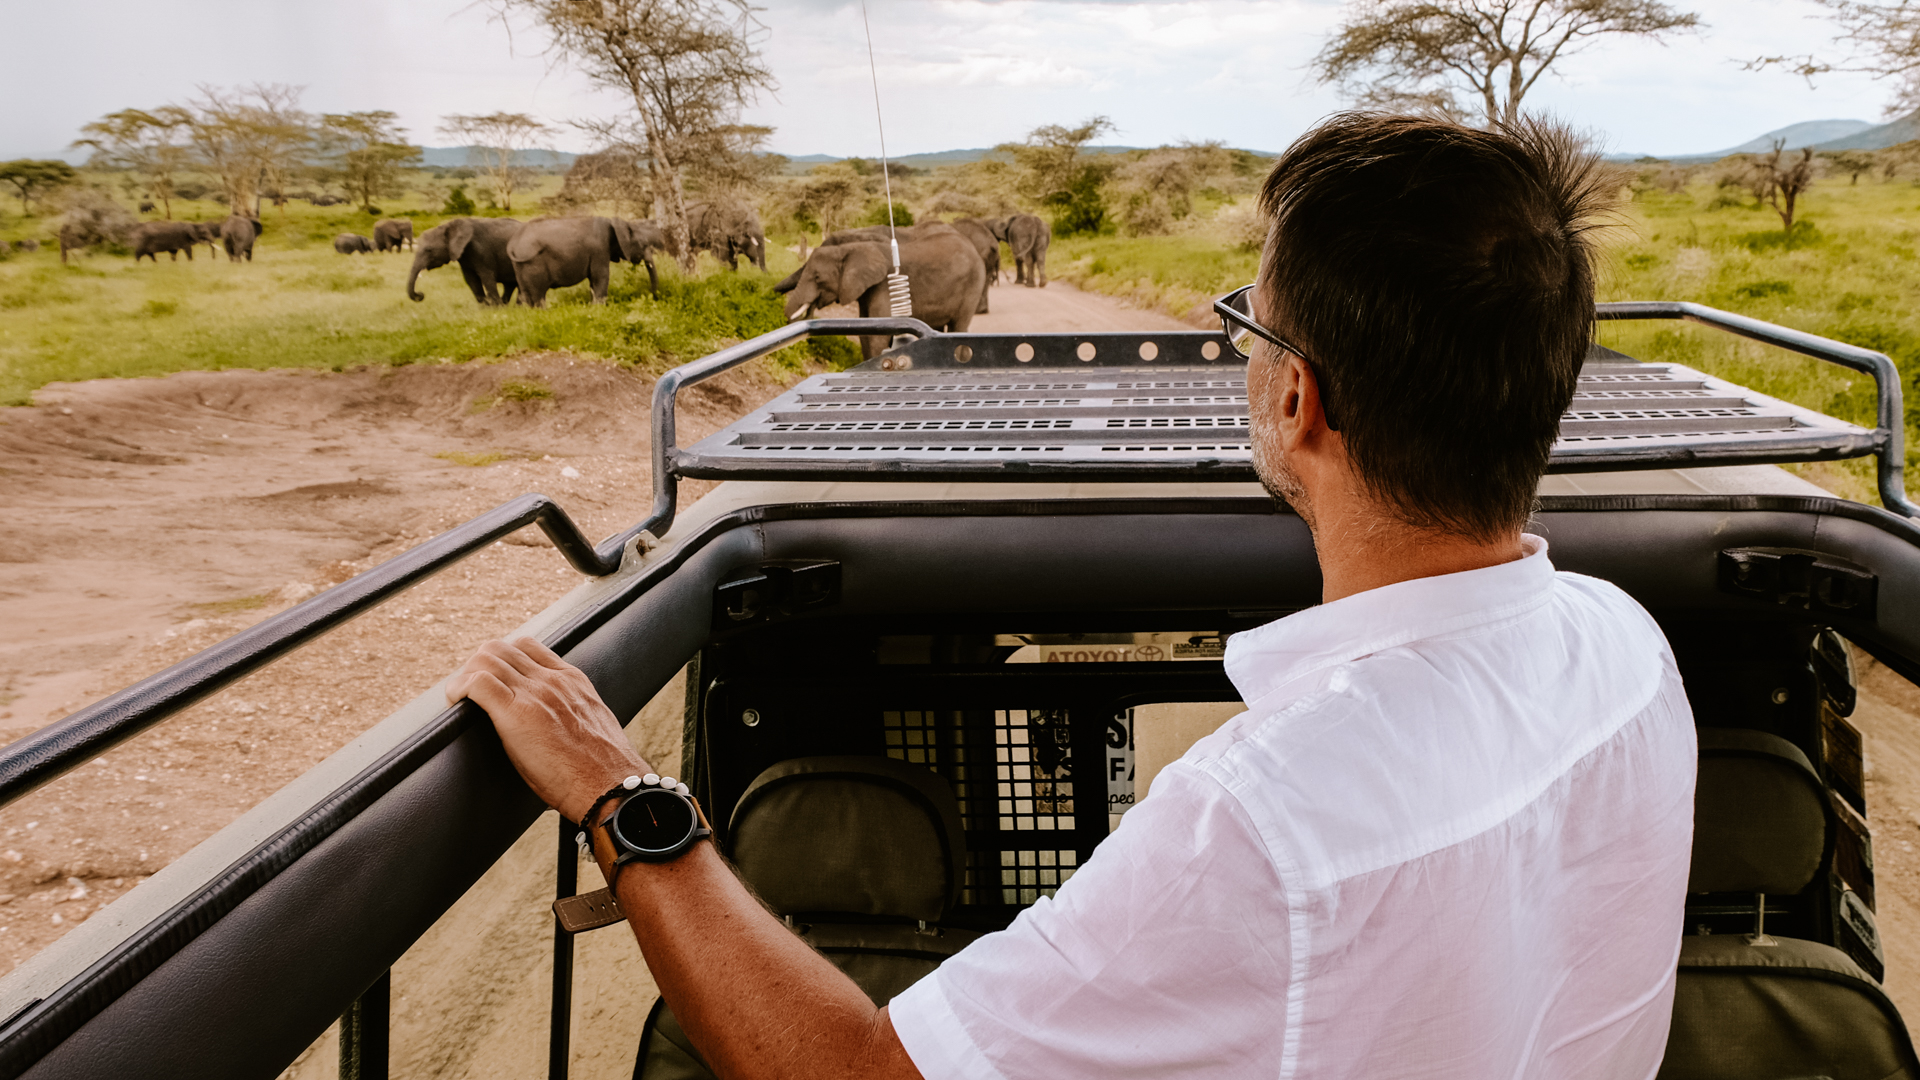 Wildlife close encounter, a herd of bush elephants, from the safety of our jeep in the Serengeti National Park, Tanzania